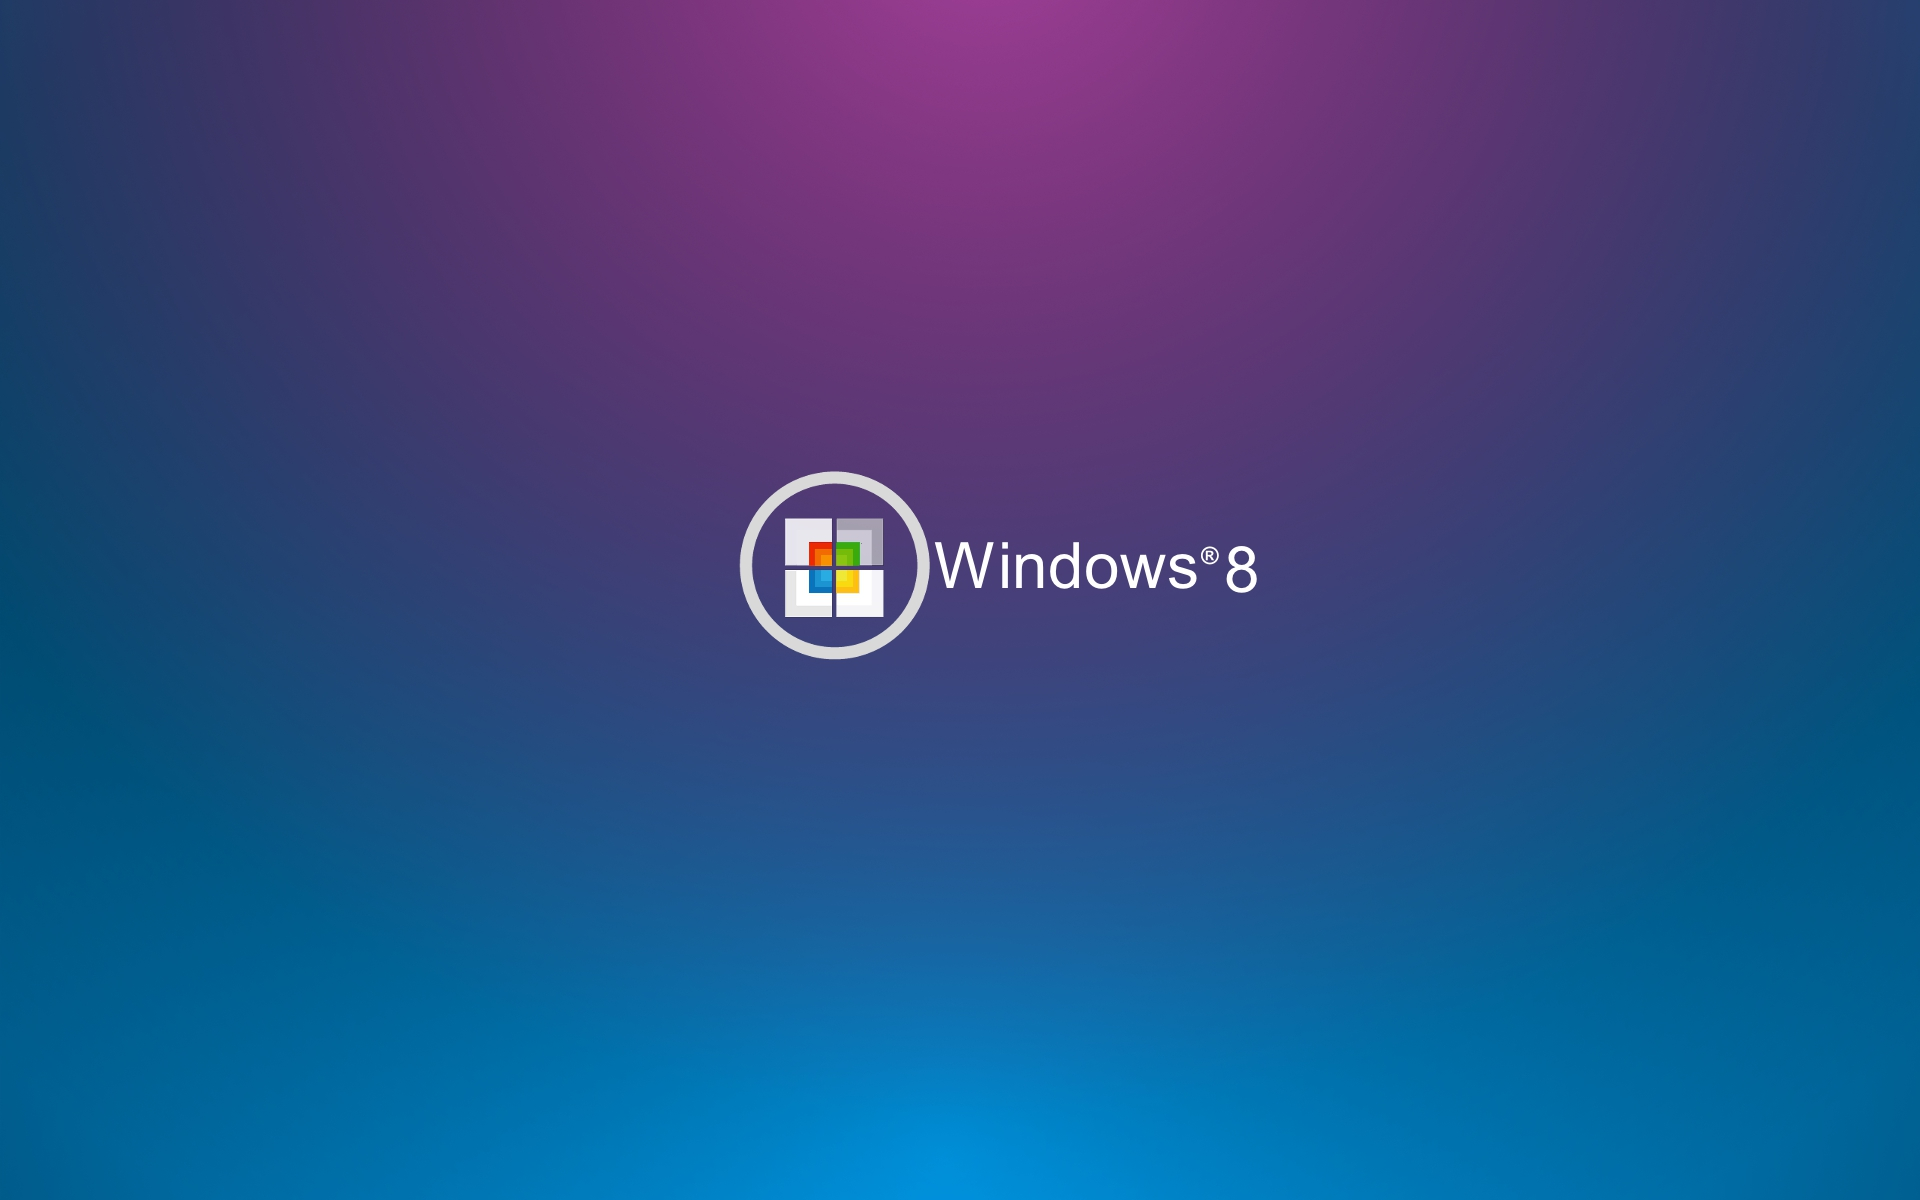 Windows 8 Wallpaper Blue and Purple